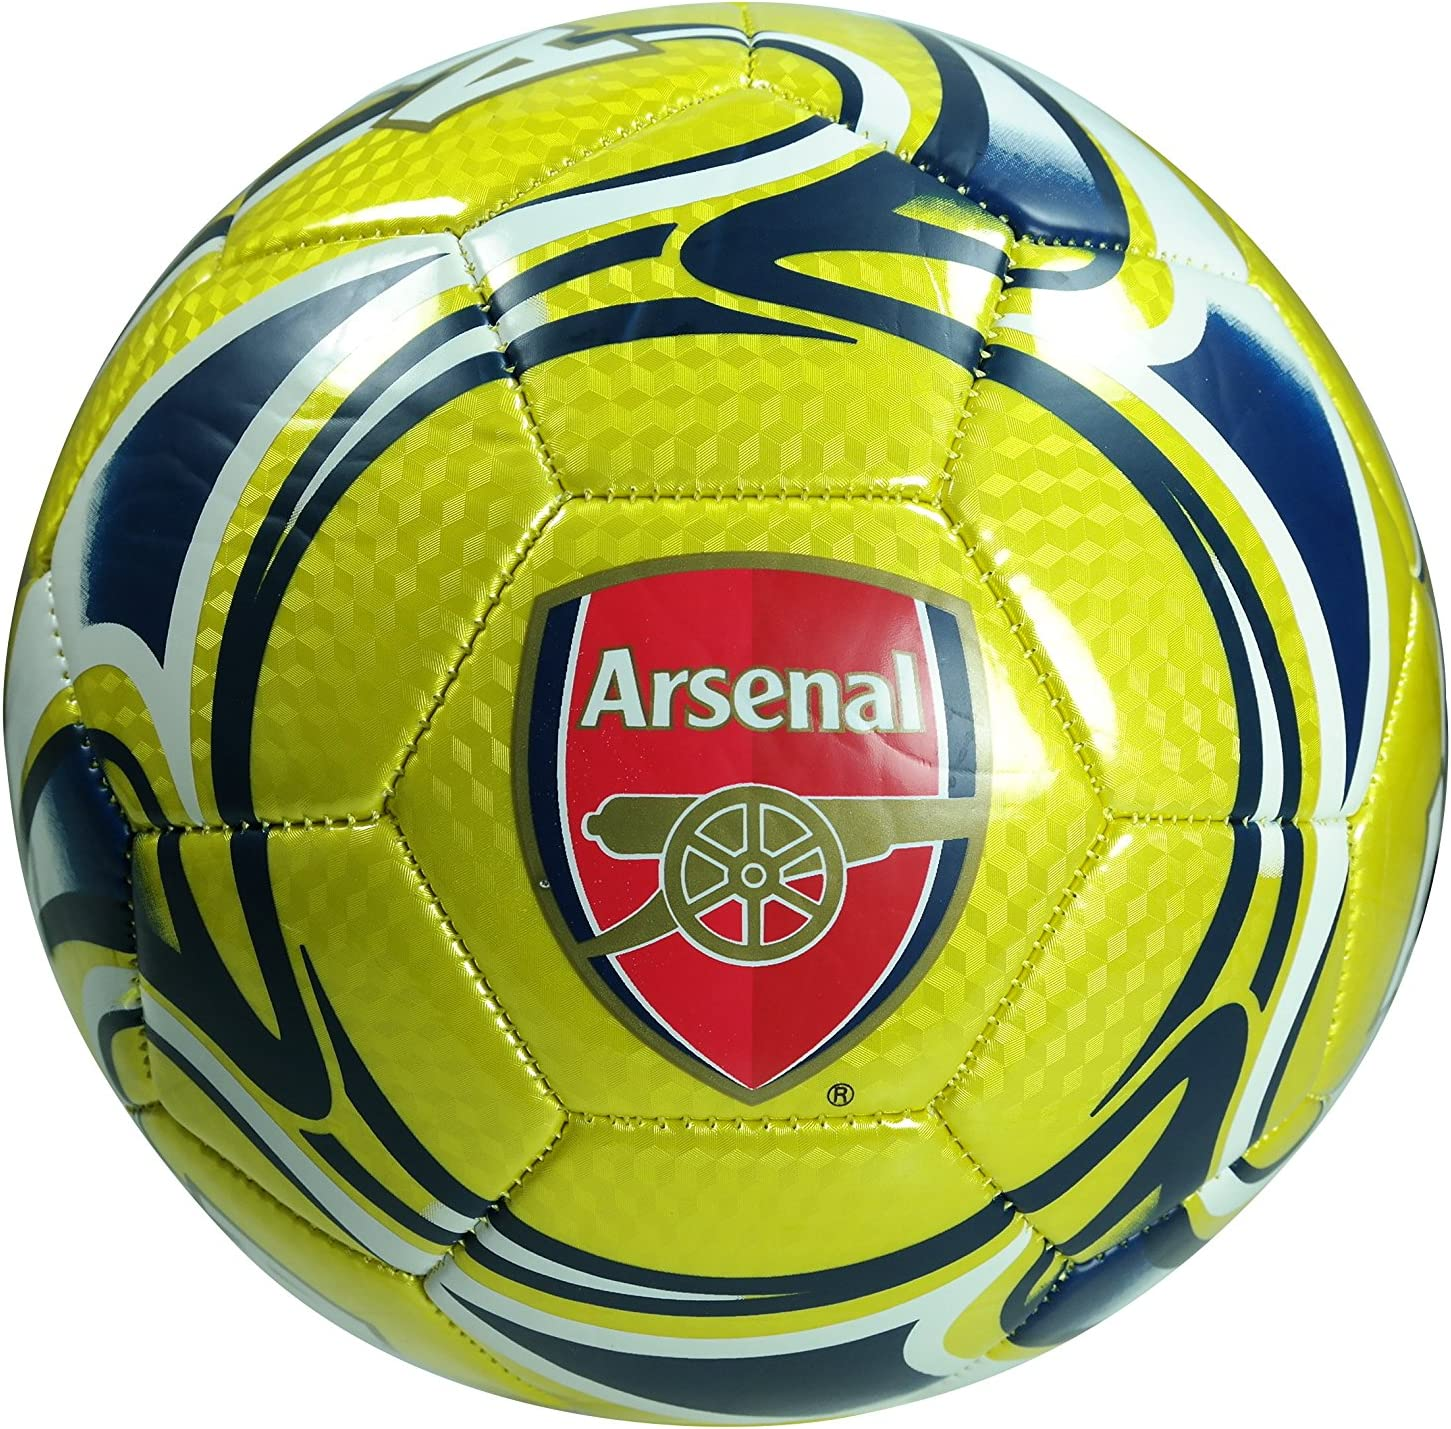 Arsenal Authentic Official Licensed Soccer Ball Size 5